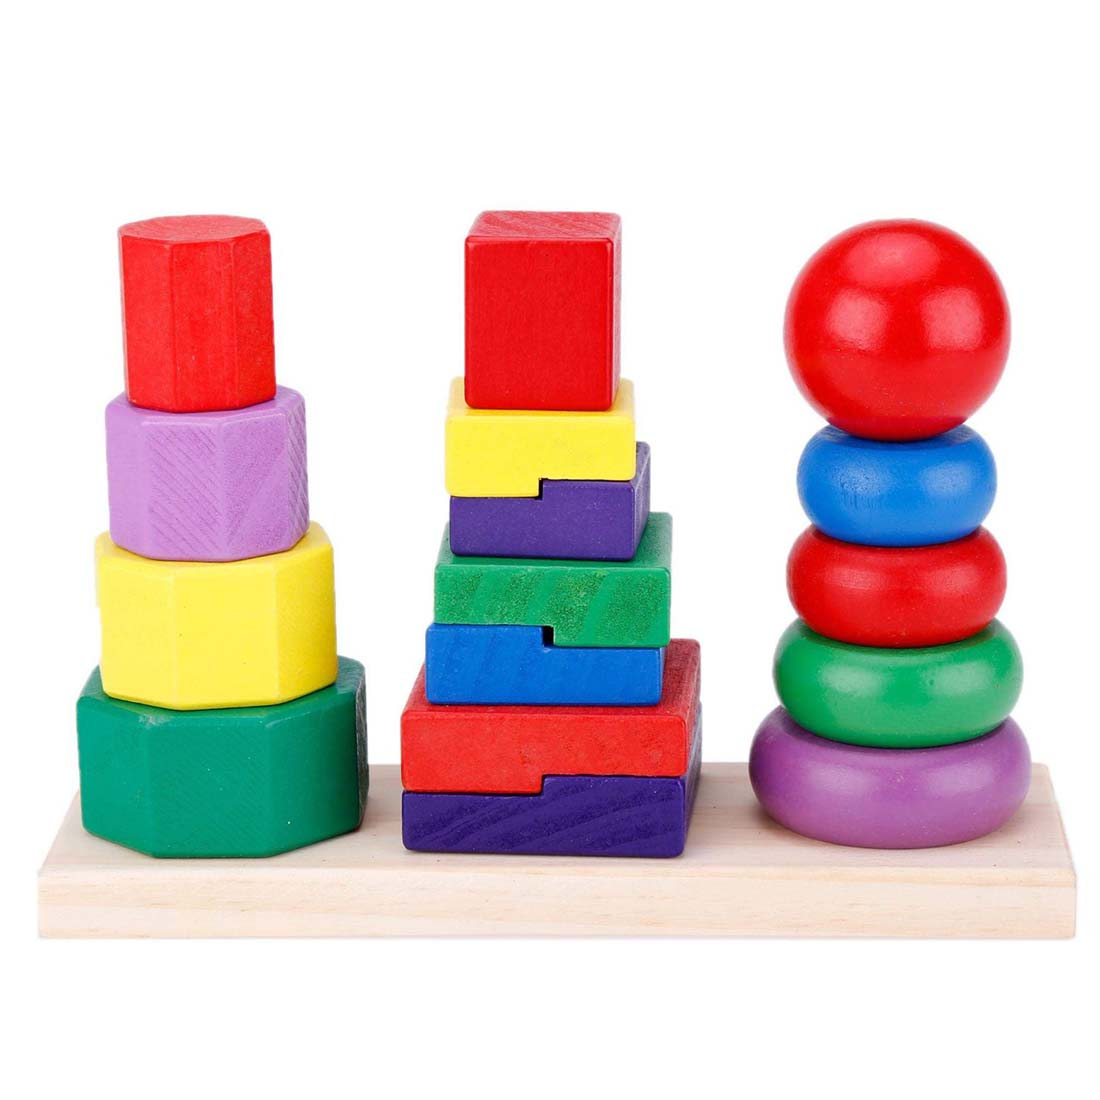 Children Baby Toys Kids Building Blocks Geometric Stacker Toddler Wooden Toy happy cherry colourful wooden digtal geometric stacker blocks shape sorting box house wood toys educational toys for baby kids